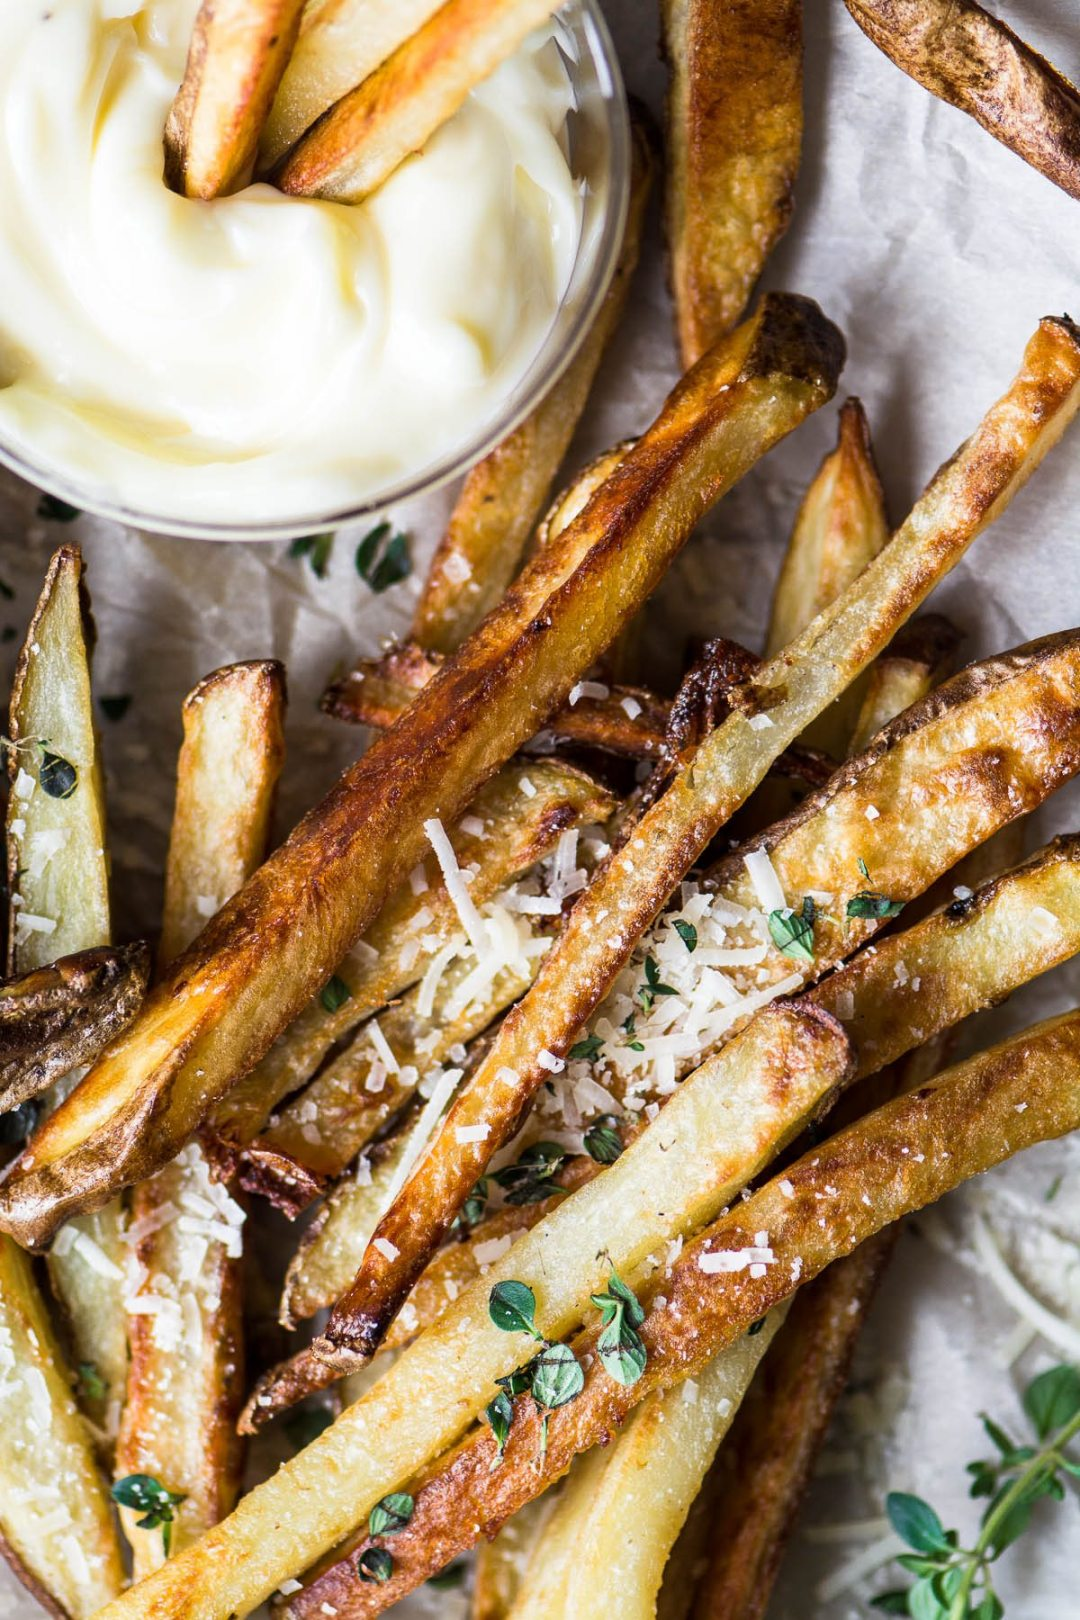 truffle fries with mayo dip on parchment paper